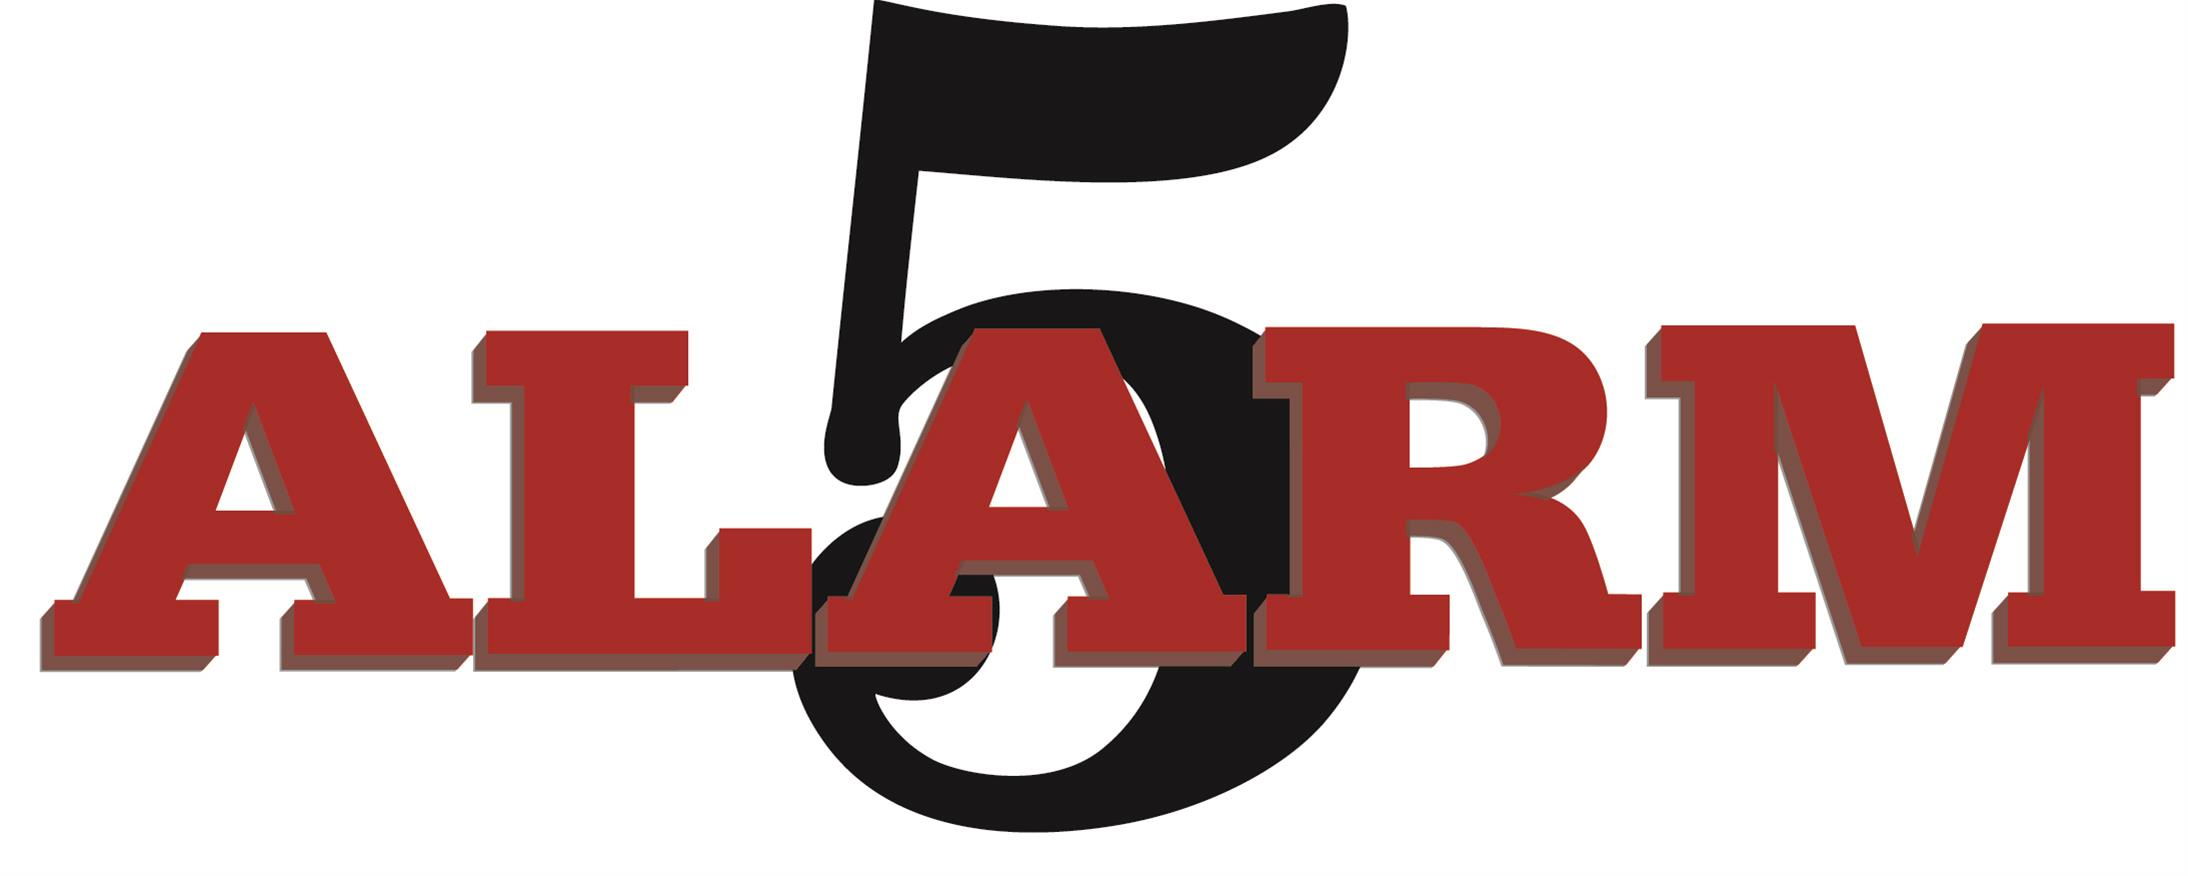 5 Alarm Fire and Safety Equipment, LLC. logo